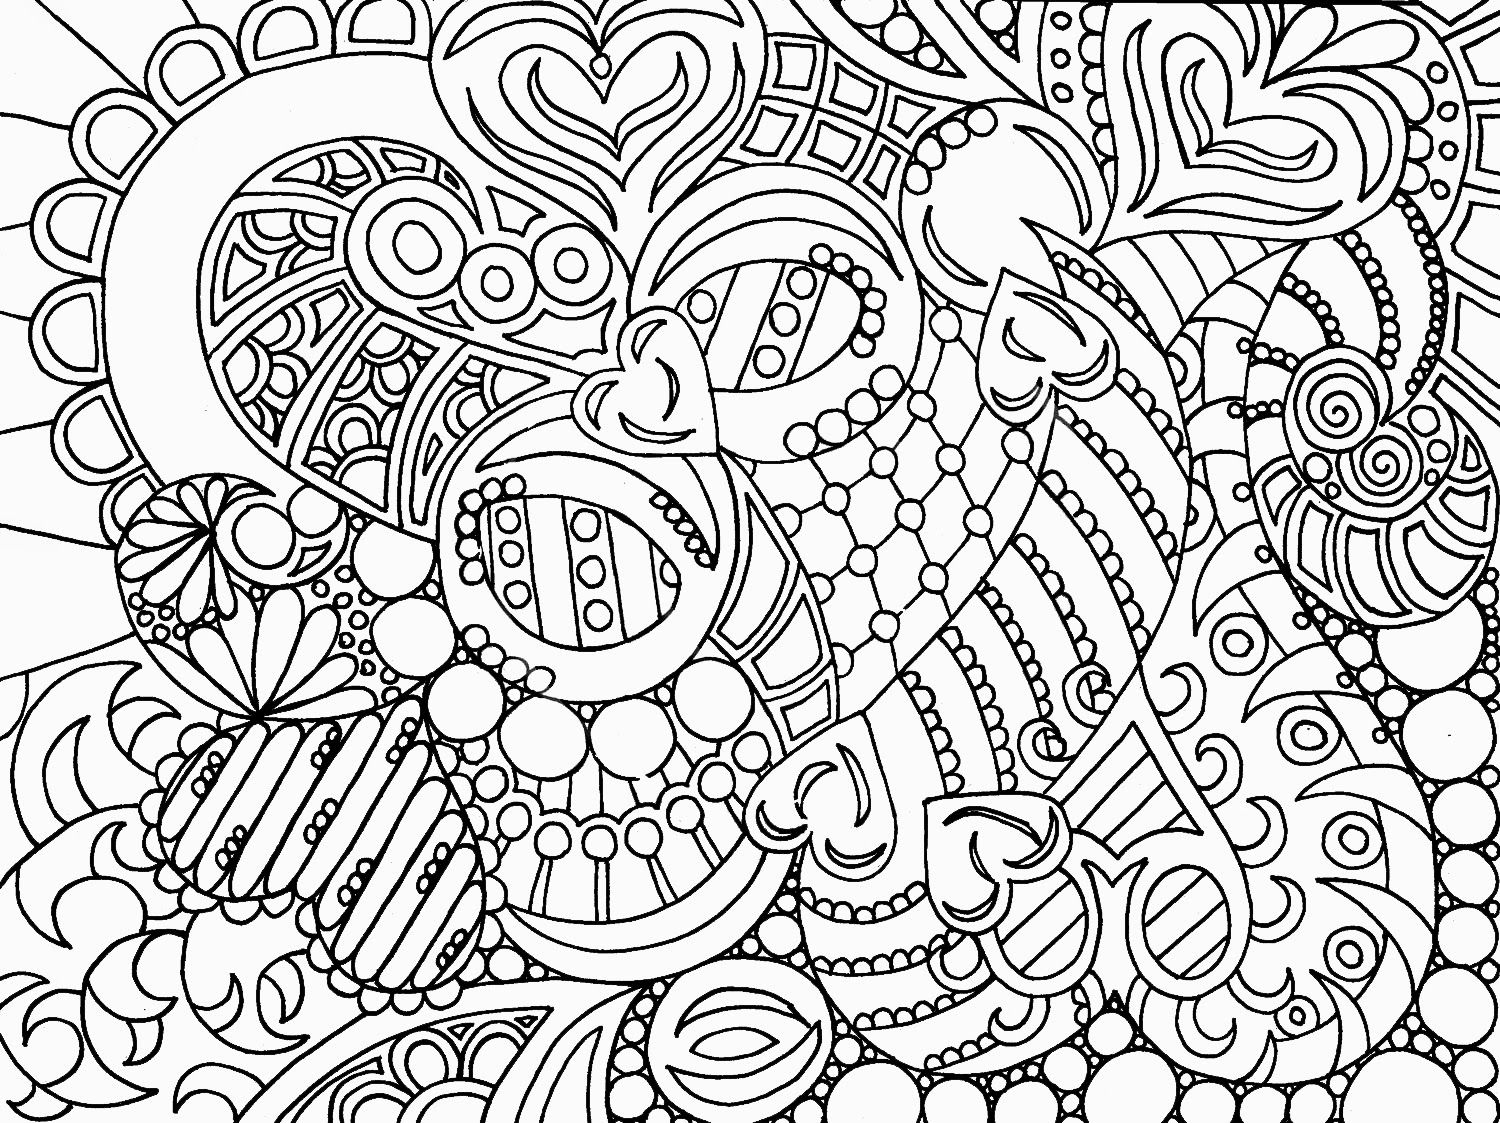 art therapy coloring pages coaching capability coordination of coloring sheet - Therapy Coloring Pages Printable